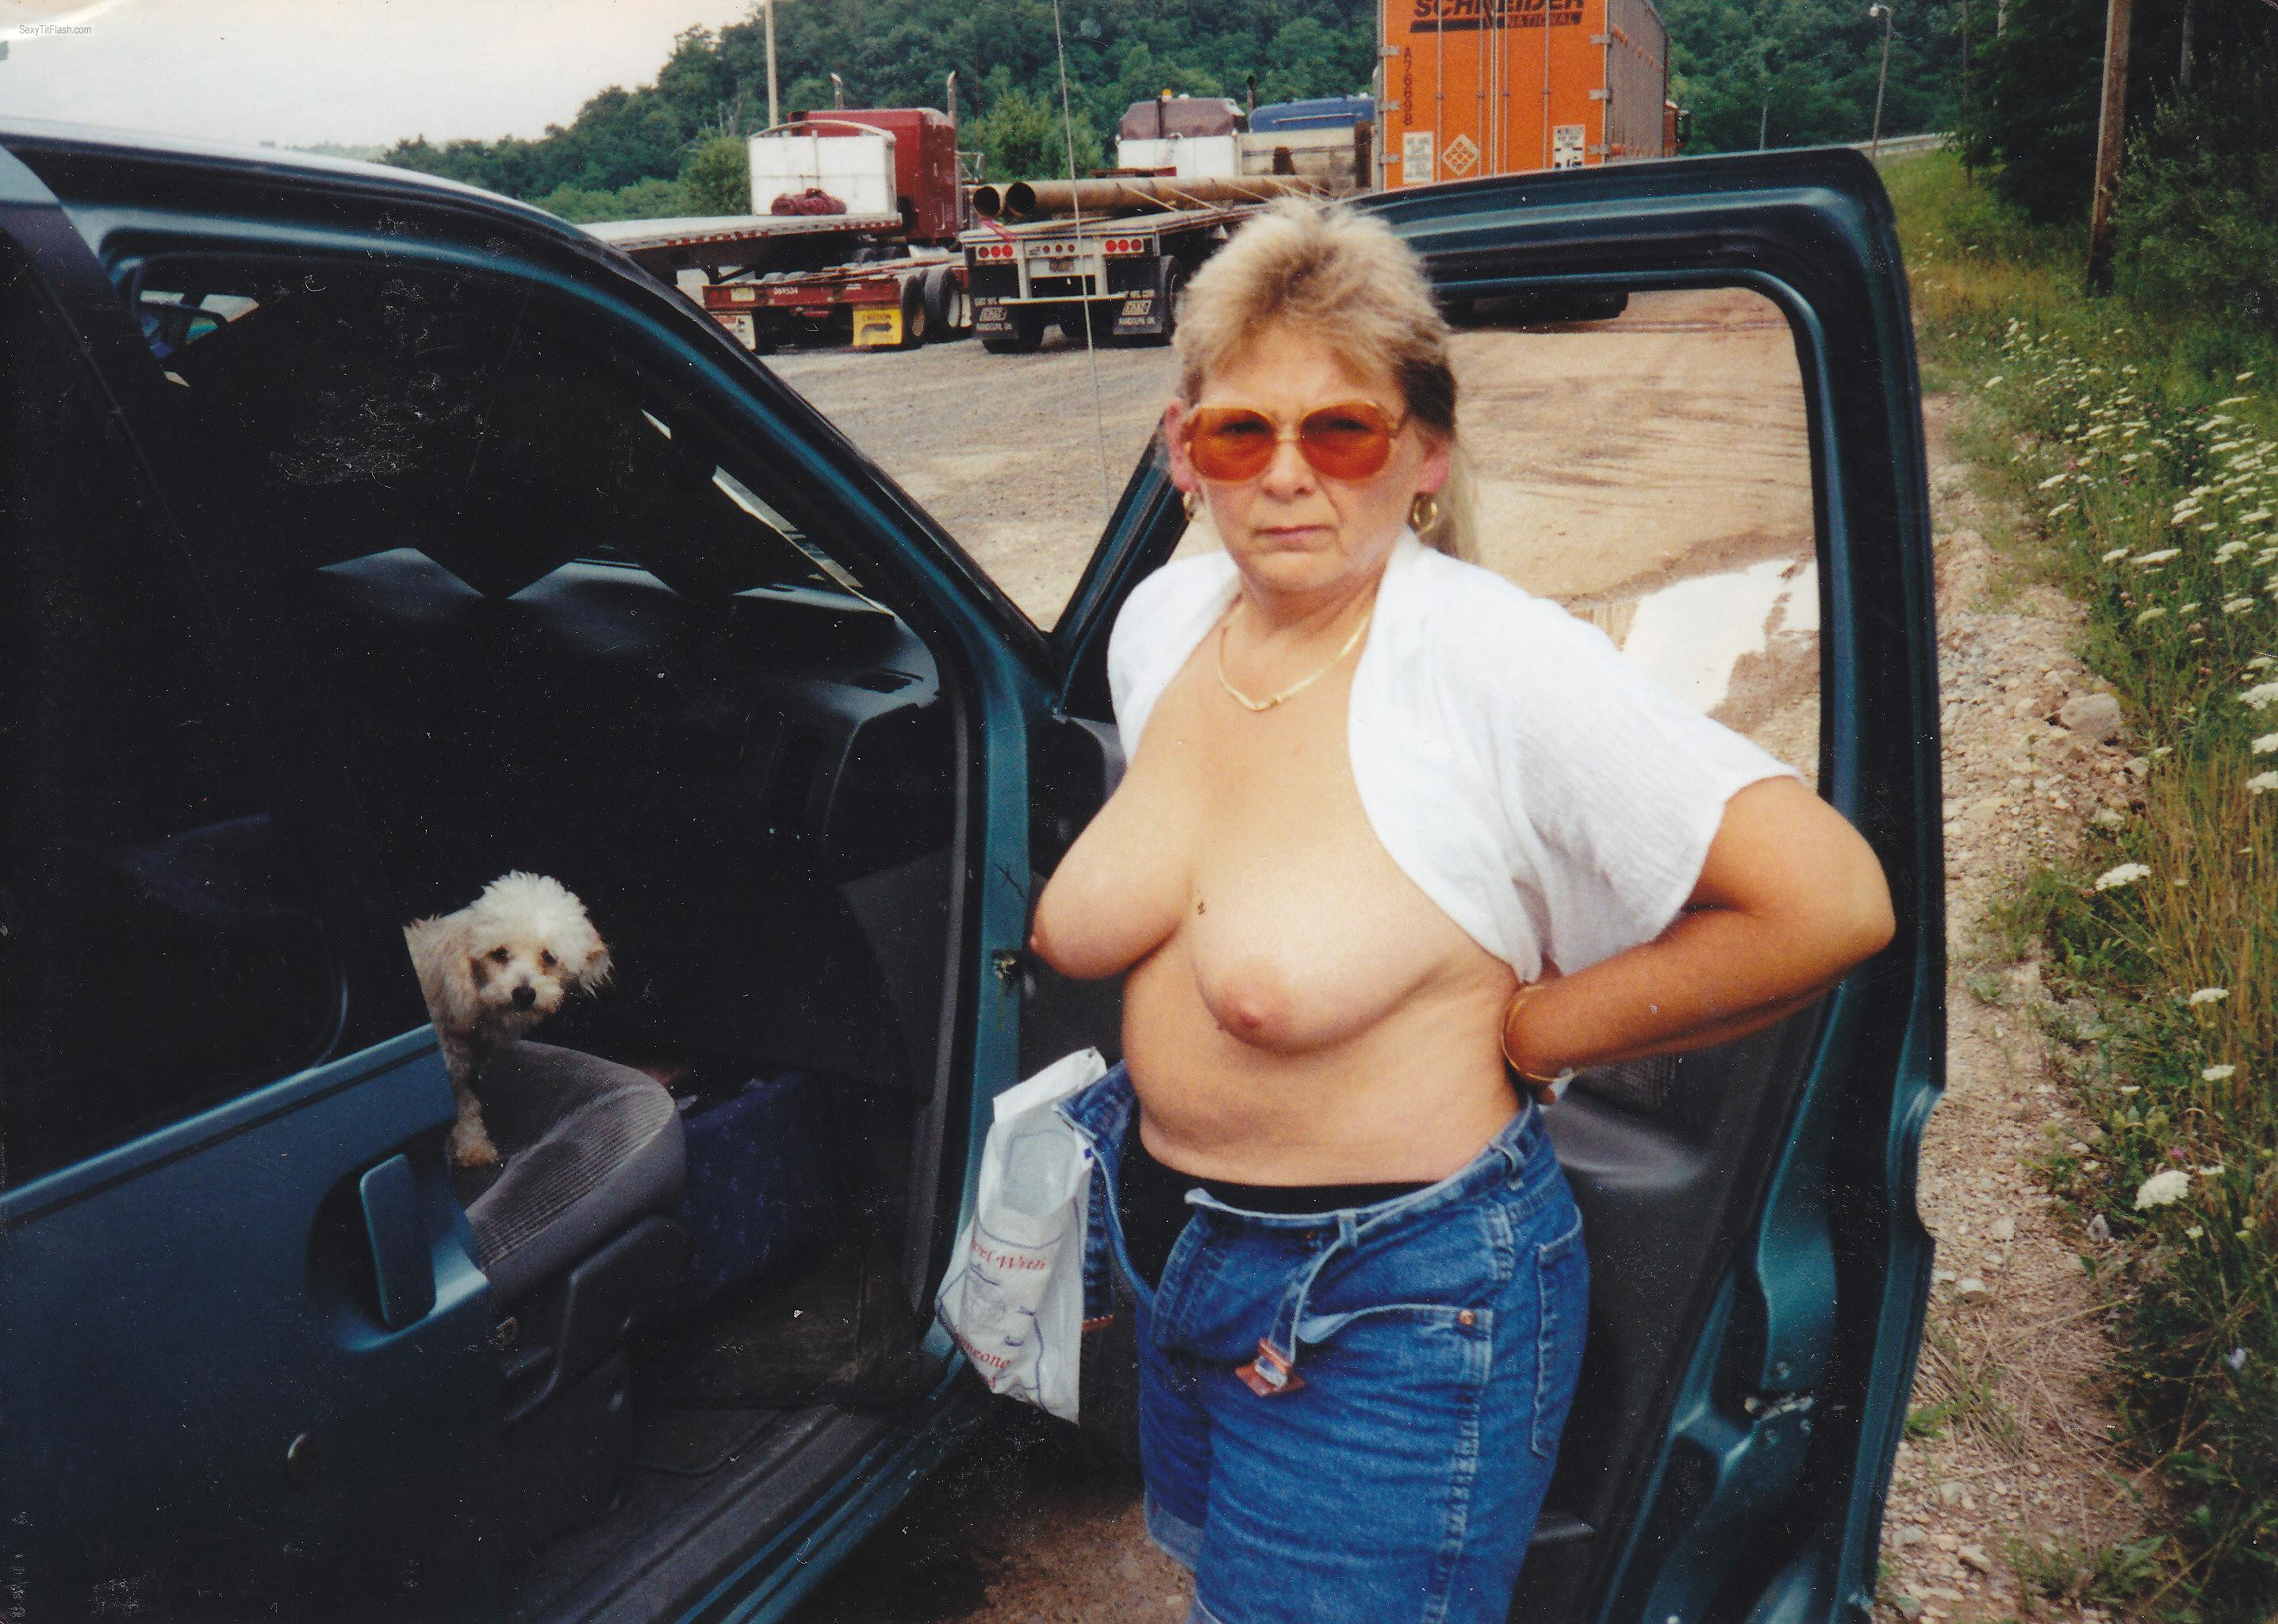 Tit Flash: Wife's Medium Tits - Topless Marie from United States